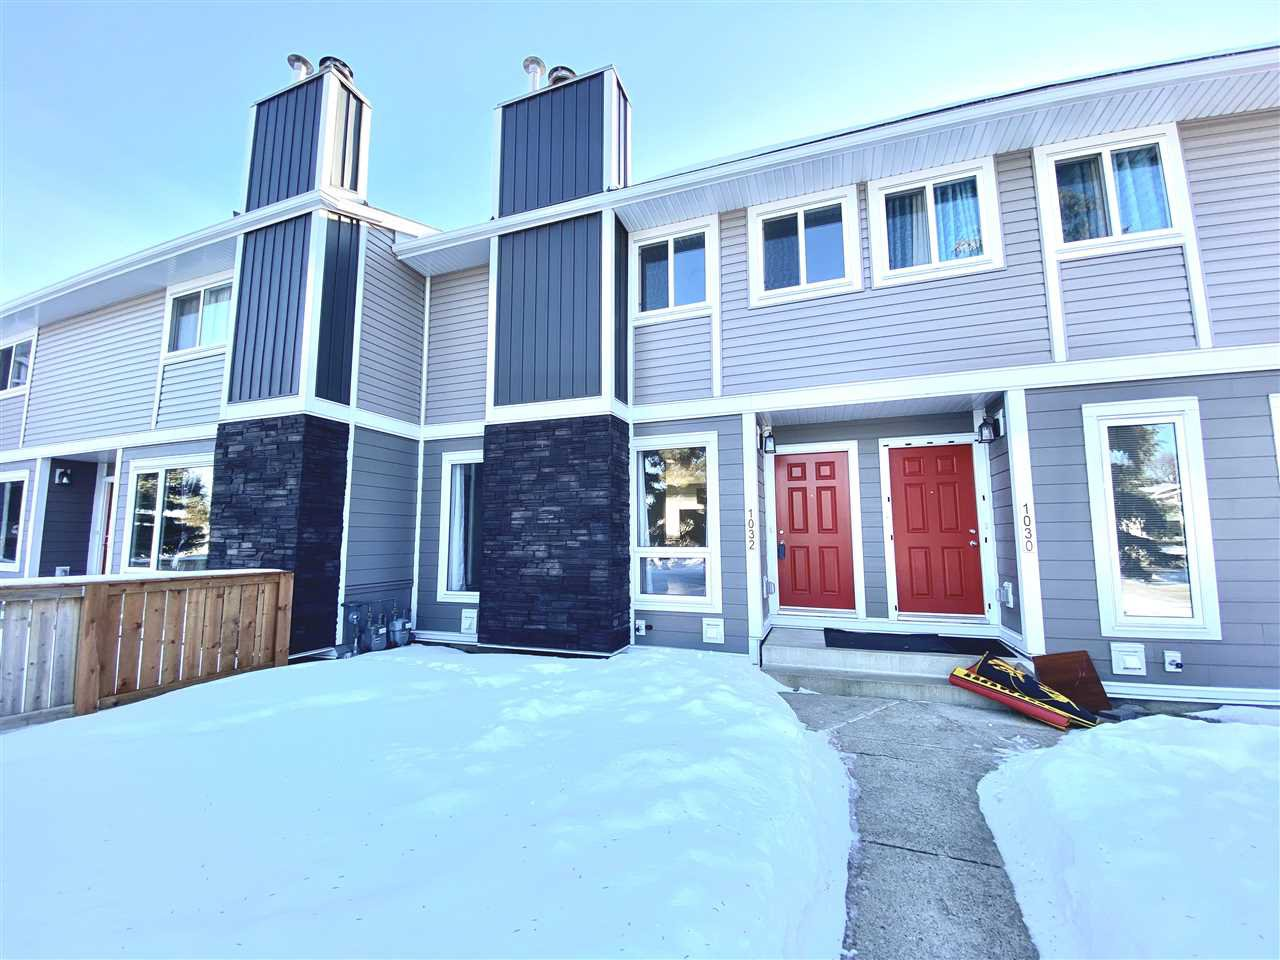 Main Photo: 1032 LAKEWOOD Road N in Edmonton: Zone 29 Townhouse for sale : MLS®# E4188450